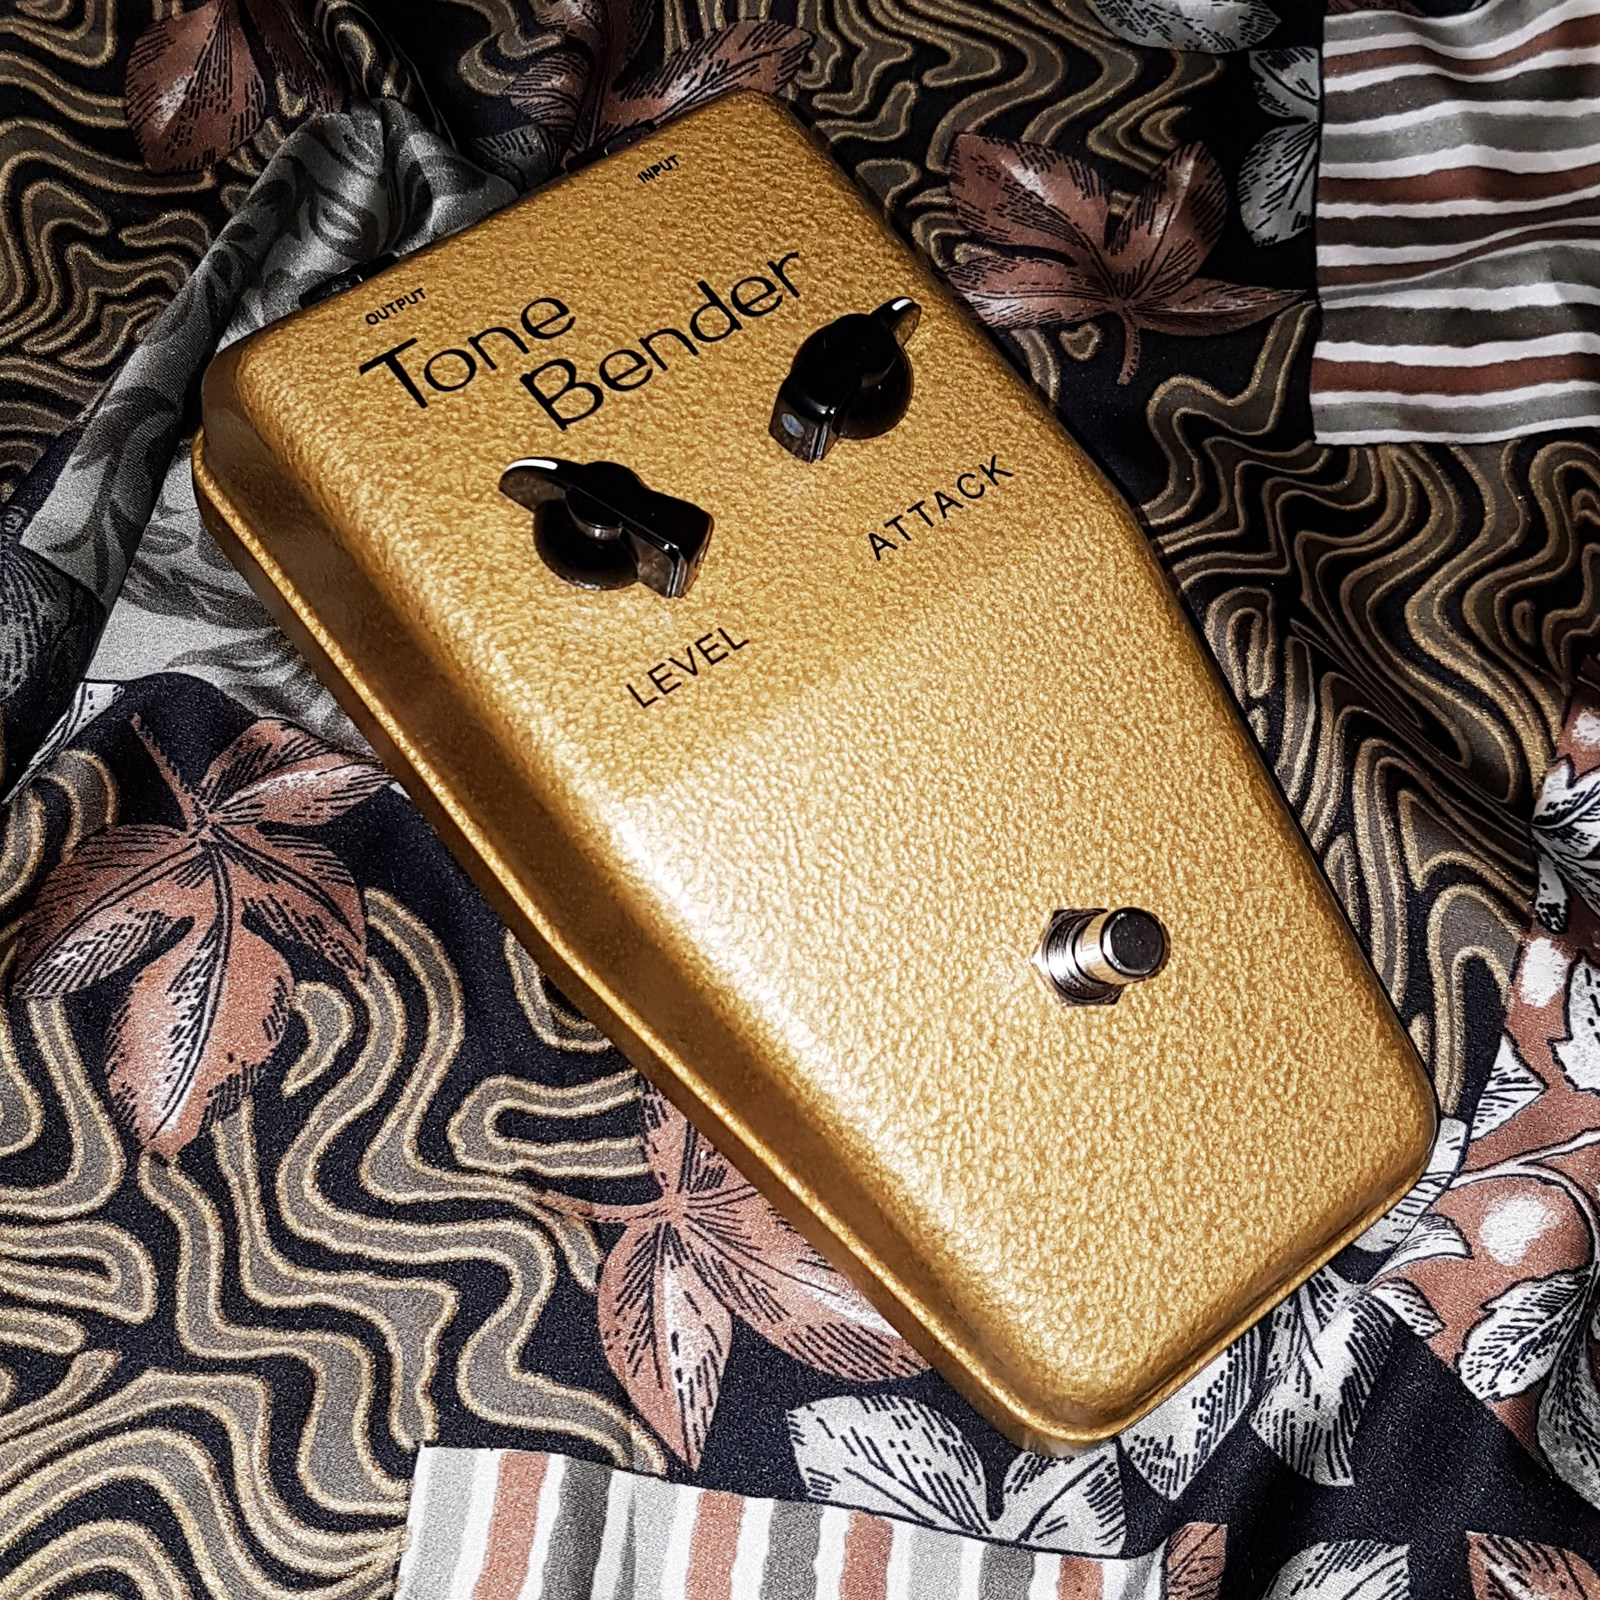 sola sound 'Goldie' Tone Bender by david main